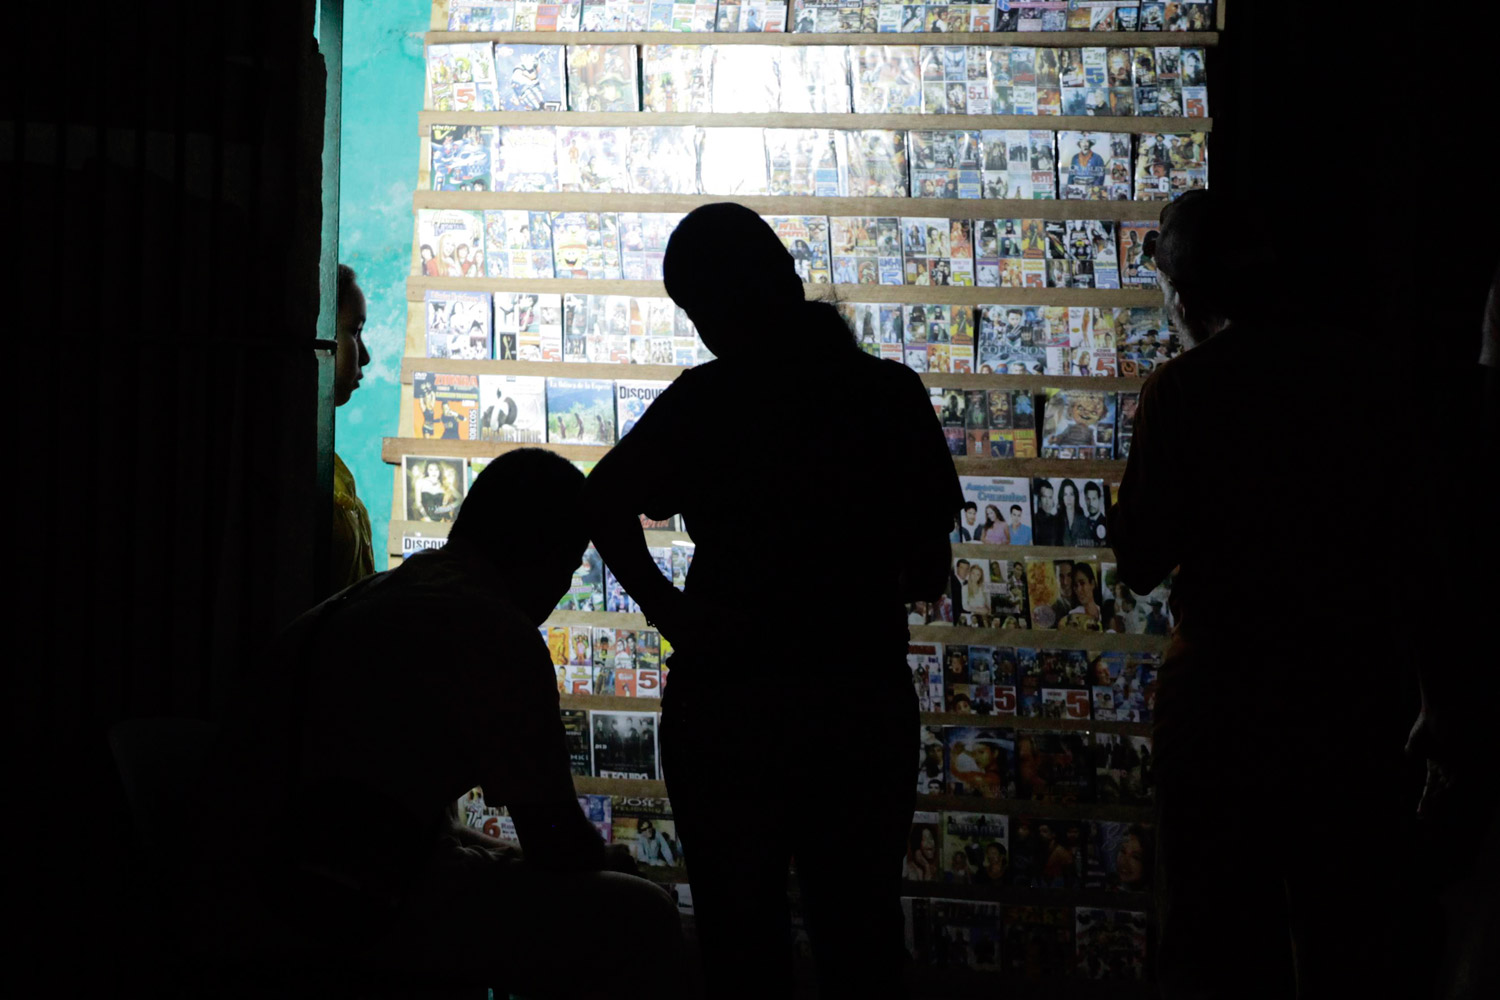 February 4, 2012. People look at DVDs at a privately licensed stall in Havana.